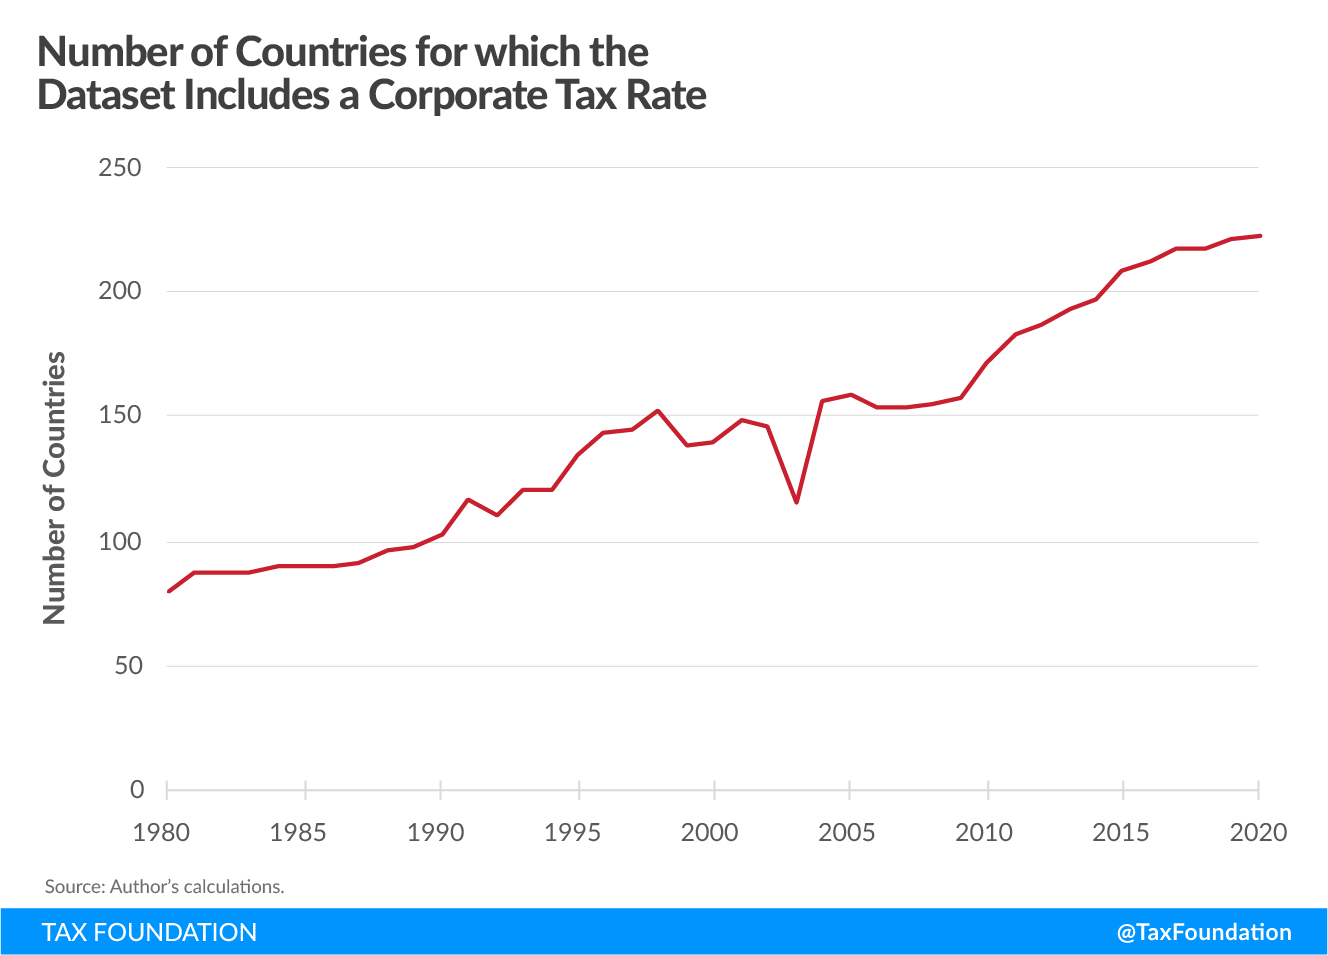 Number of Countries for which the Dataset Includes a Corporate Tax Rate, 2020 corporate tax rates around the world, 2020 corporate tax trends